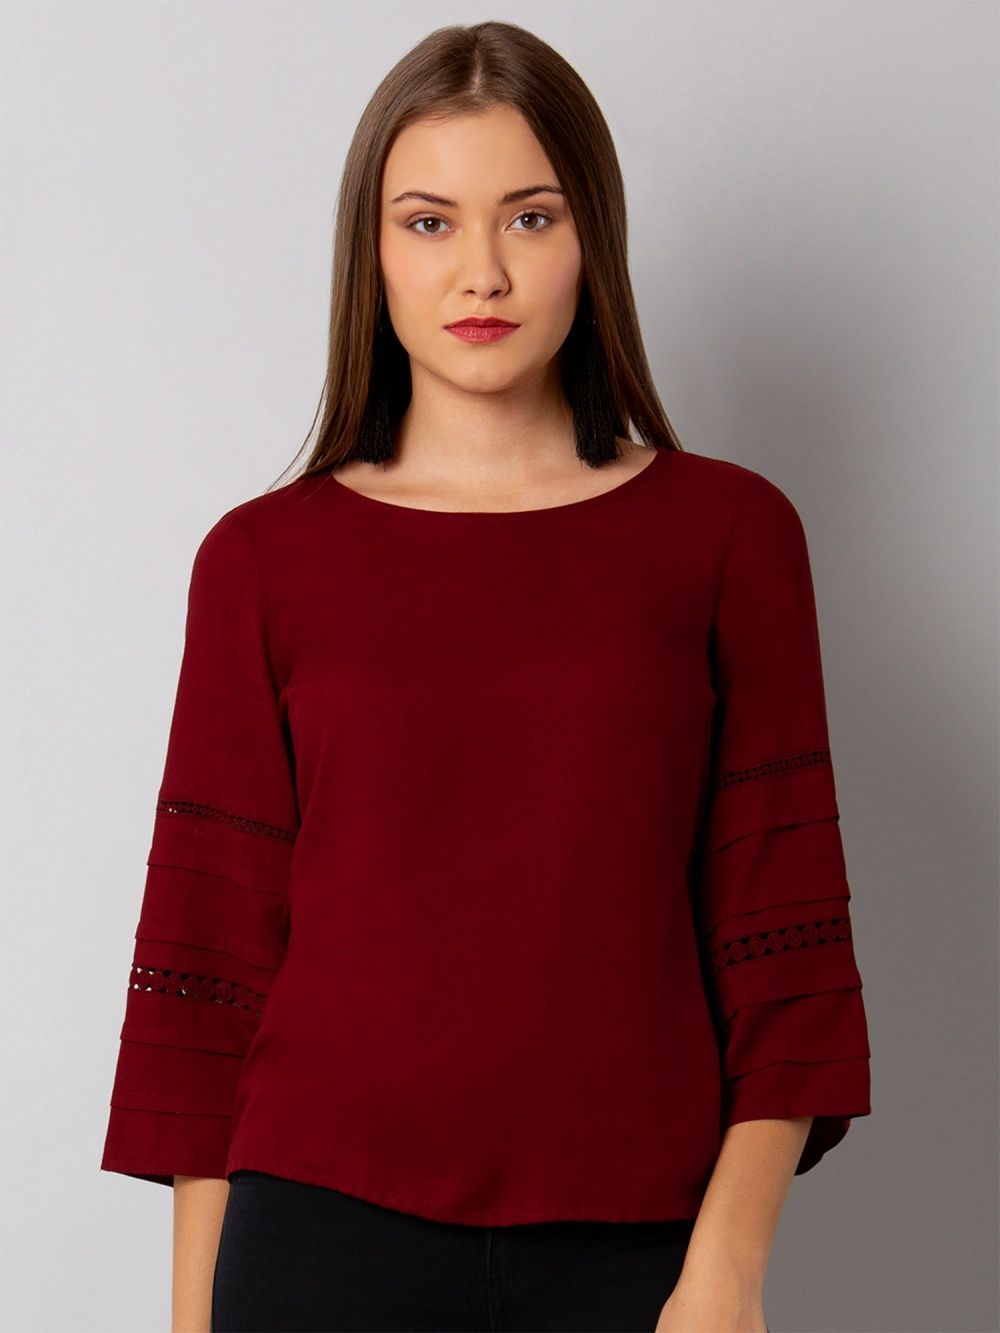 cff04216160 Faballey Shirts Tops and Crop Tops   Buy Faballey Maroon Lace Insert ...